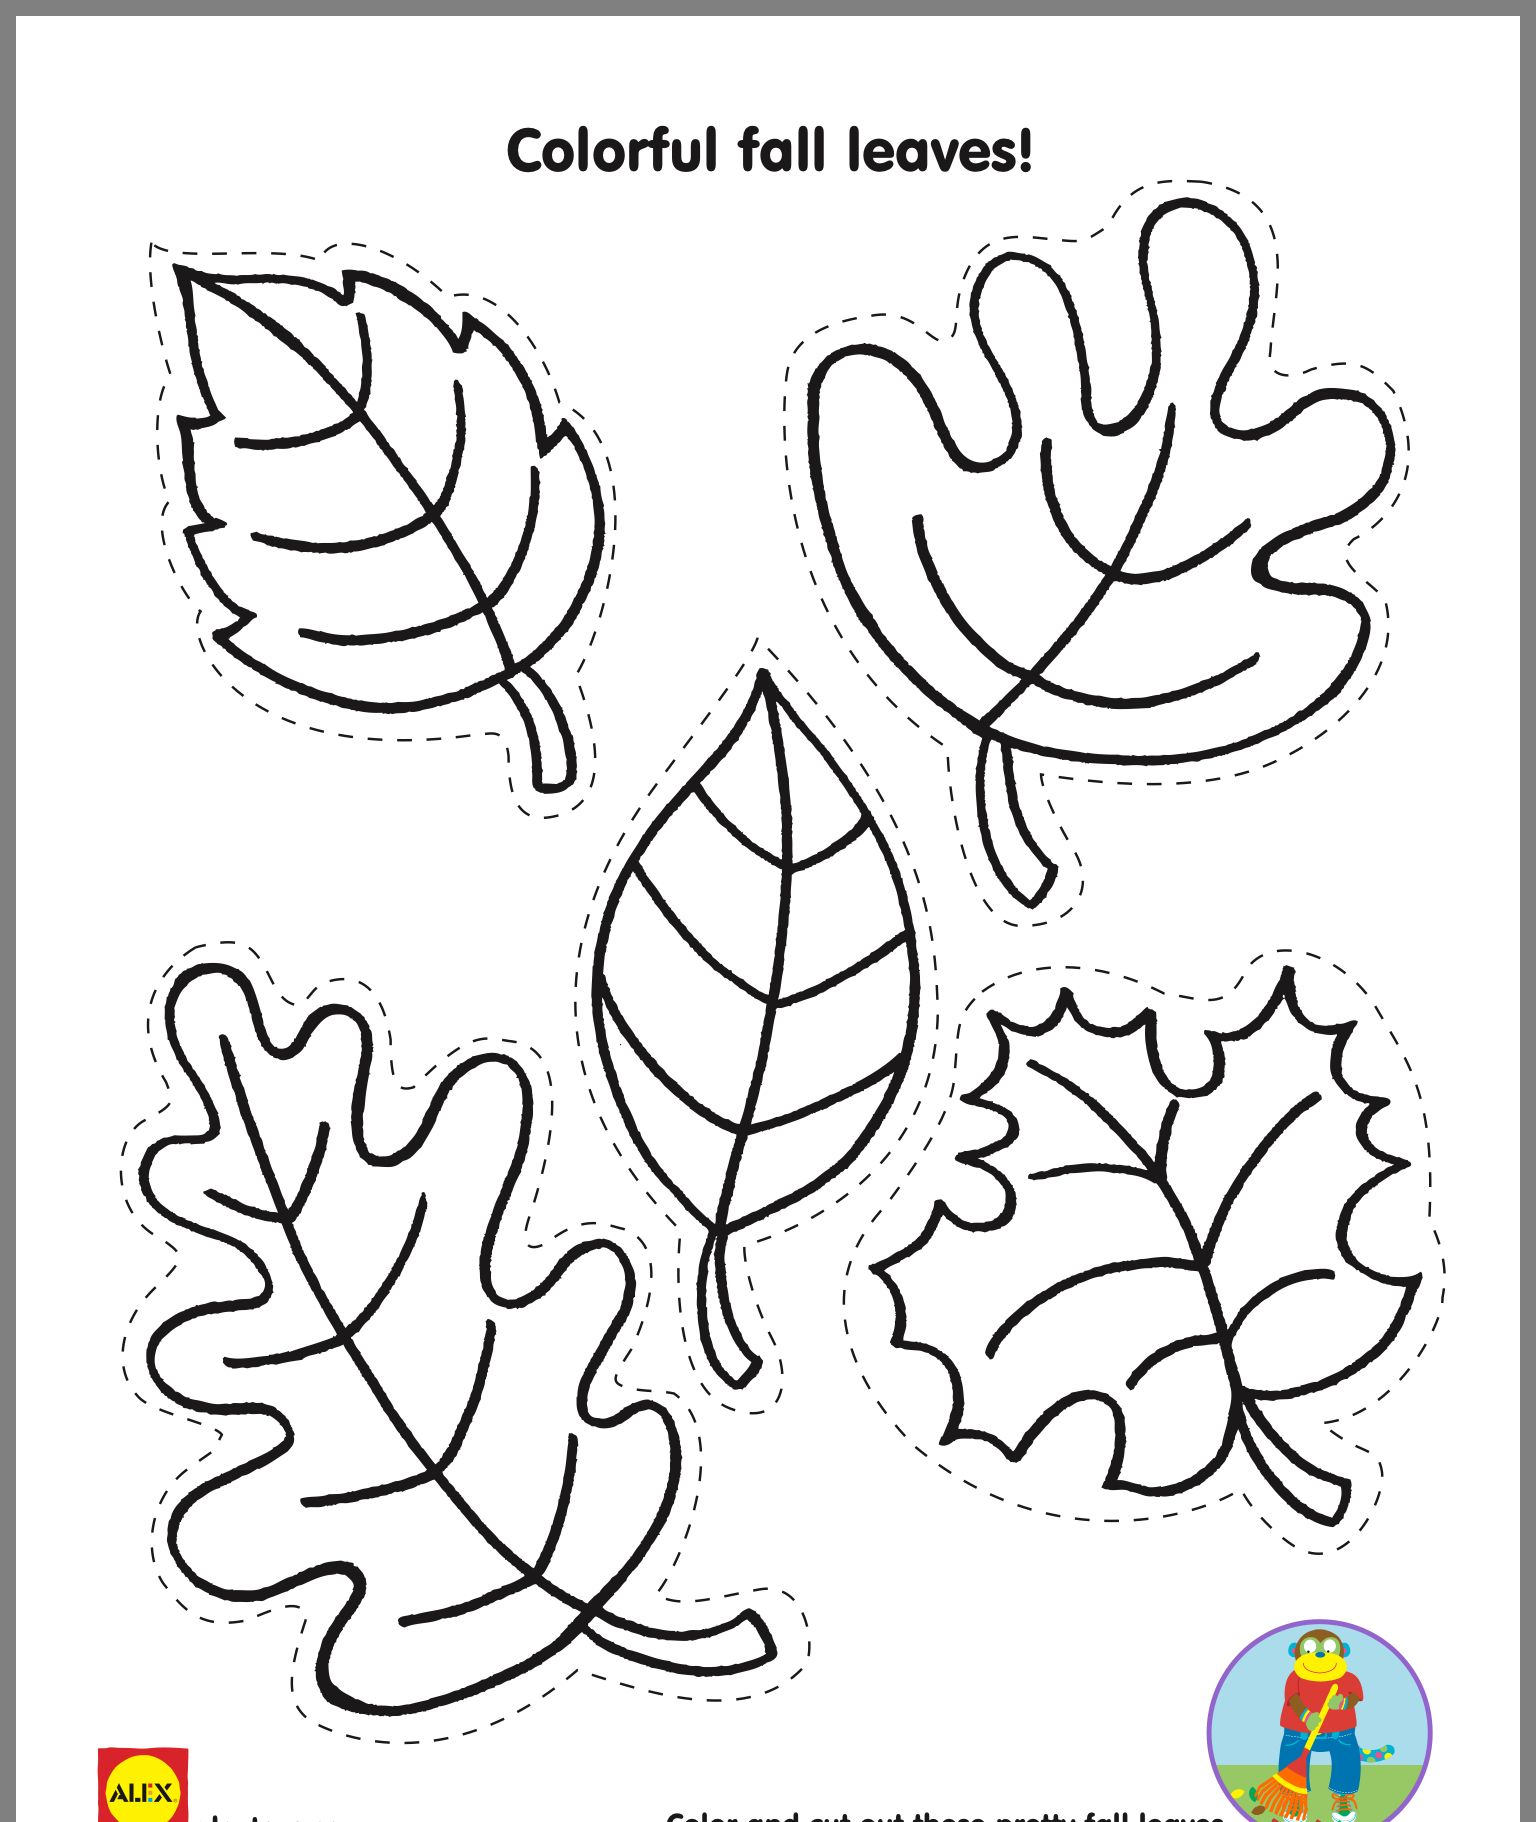 Pin By Yariveliz Martinez On Preschool Activities For 2018 2019 Fall Leaf Template Fall Leaves Coloring Pages Fall Kids